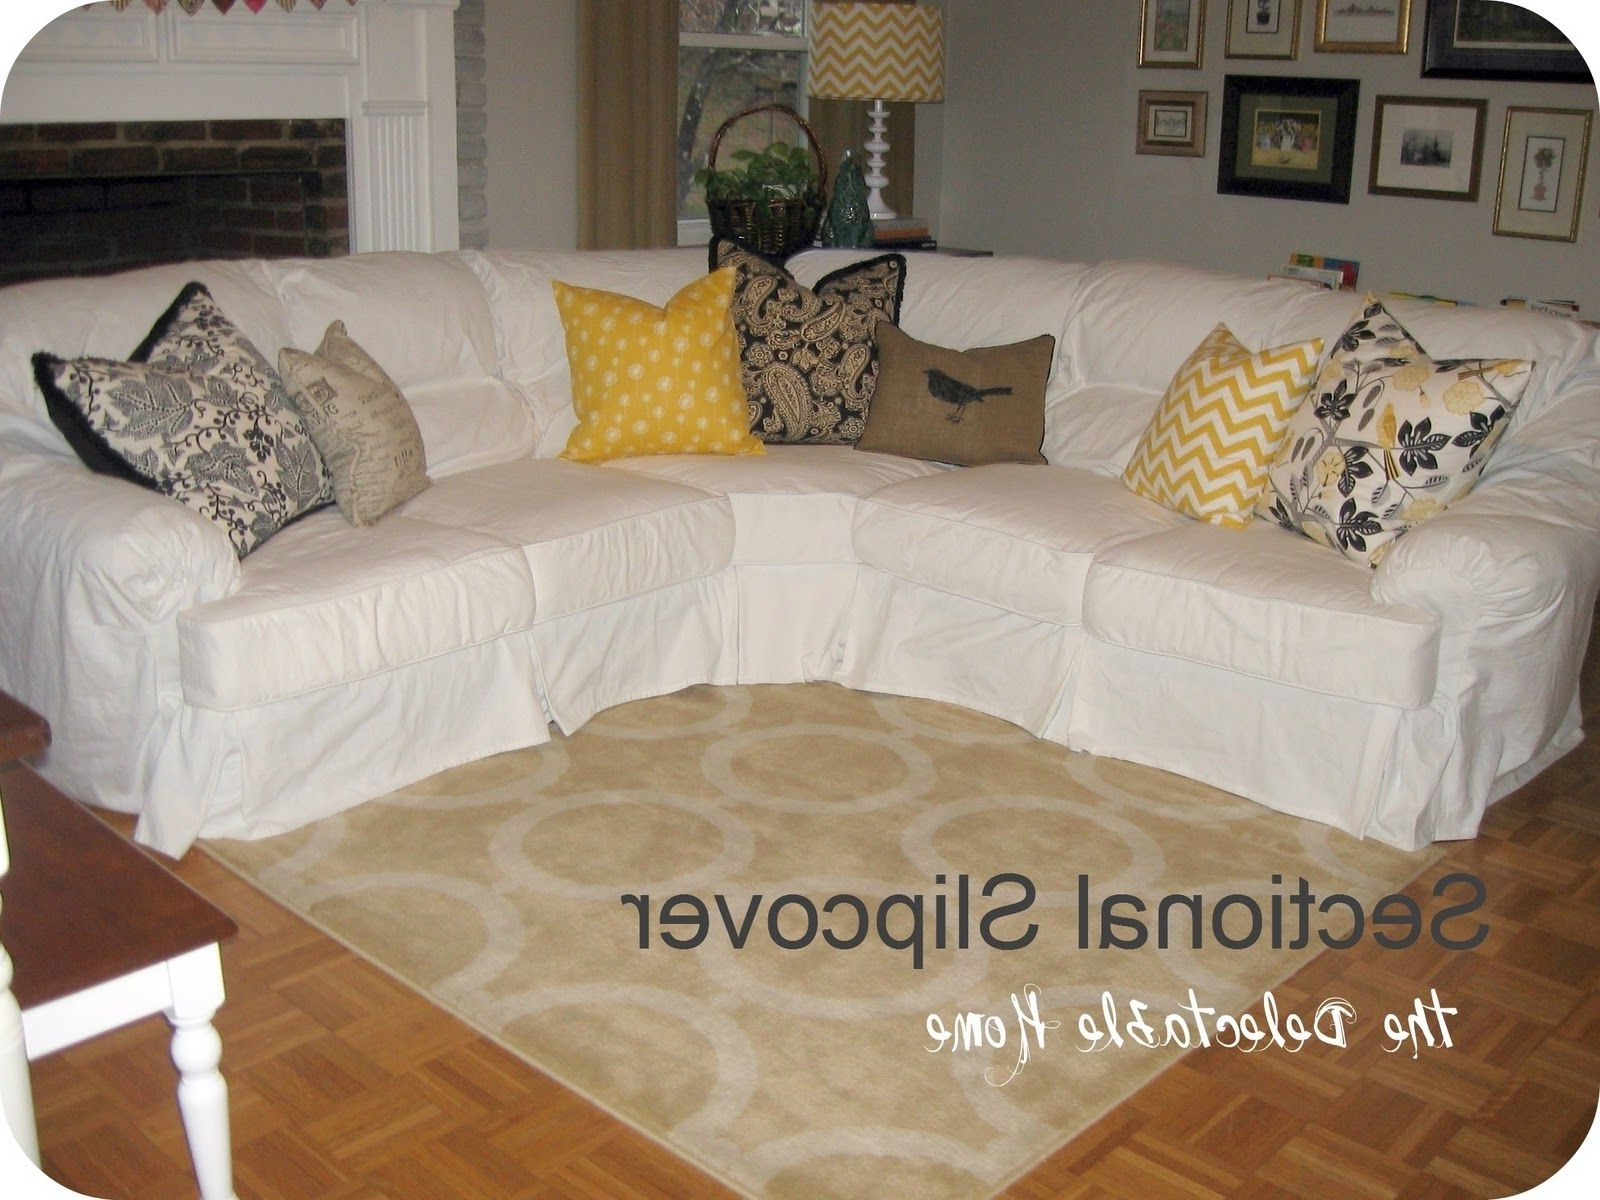 august after finally grosgrain sectional slipcovers sofa slipcover affordable ikea